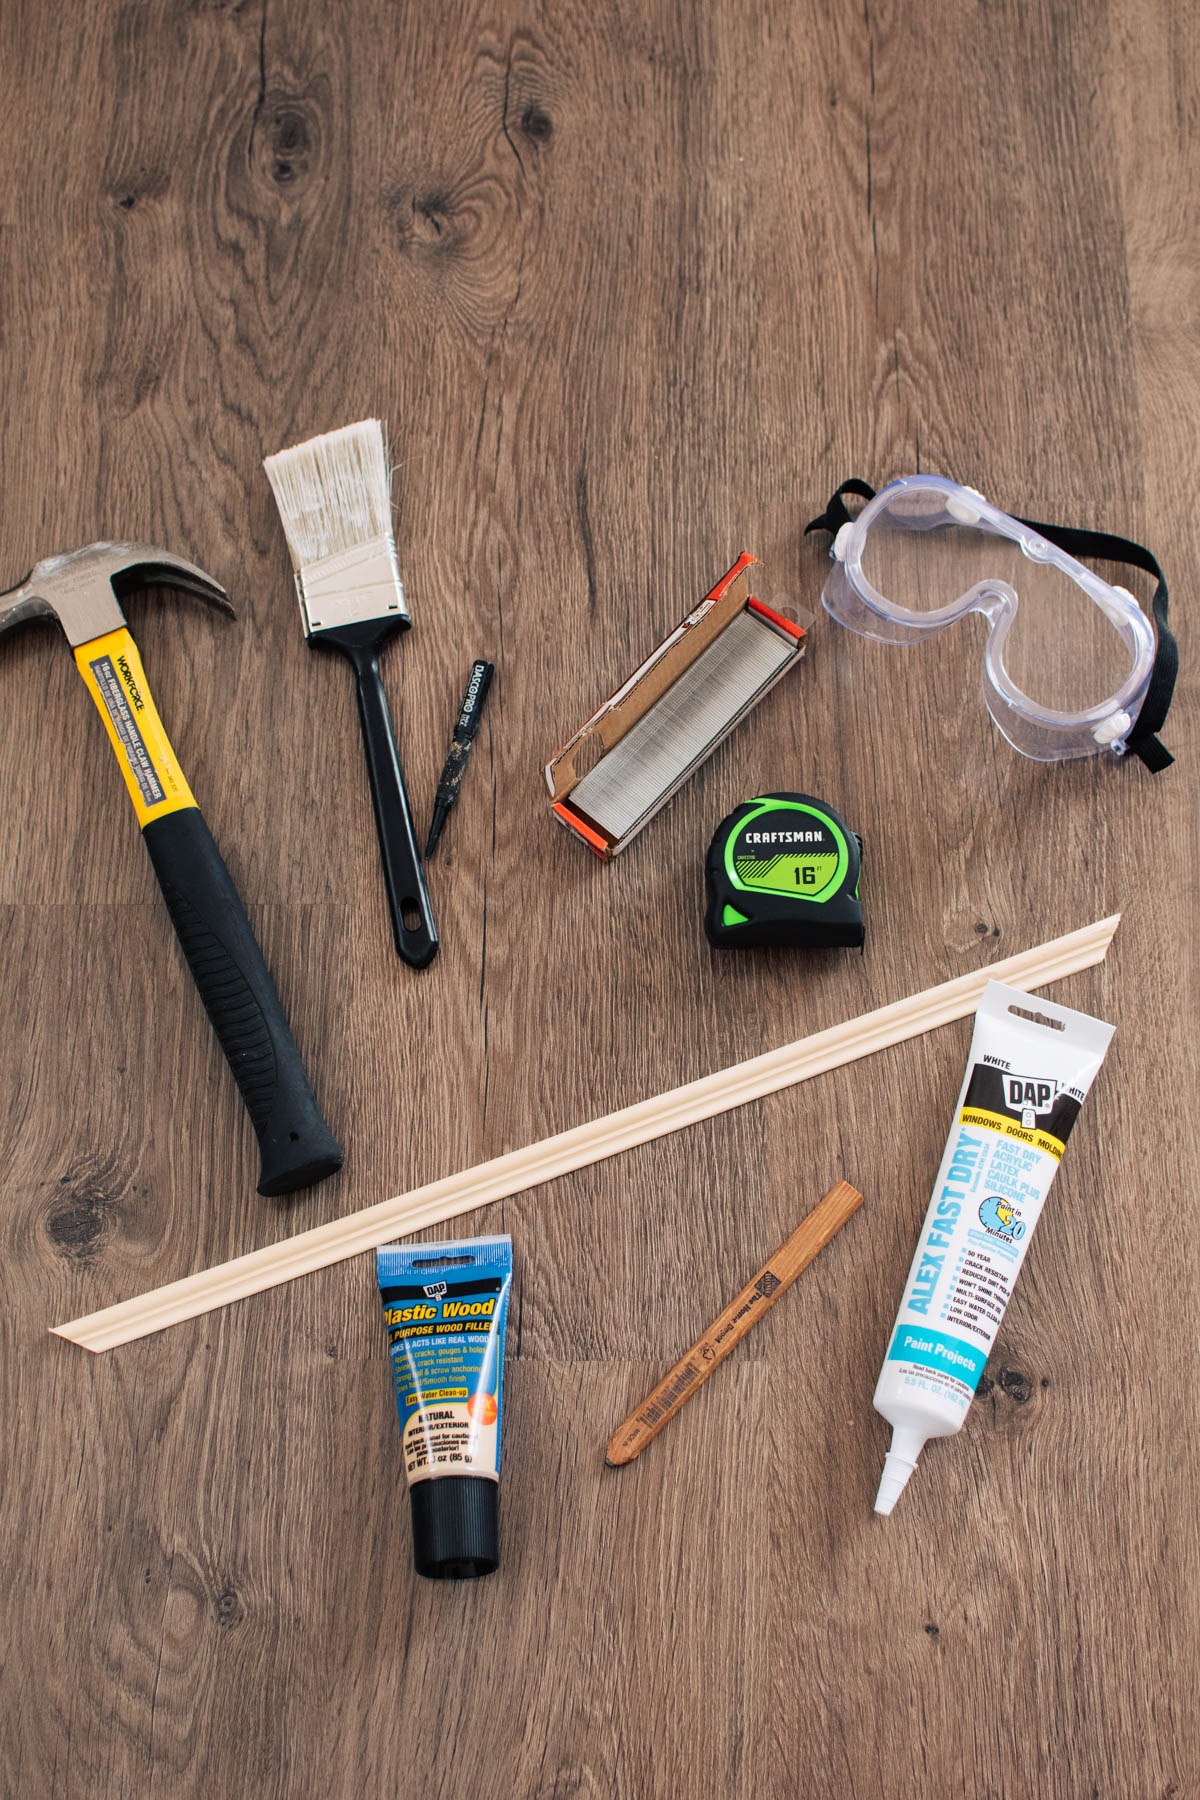 Various building materials including hammer, paintbrush, goggles, and nails on wood floor.